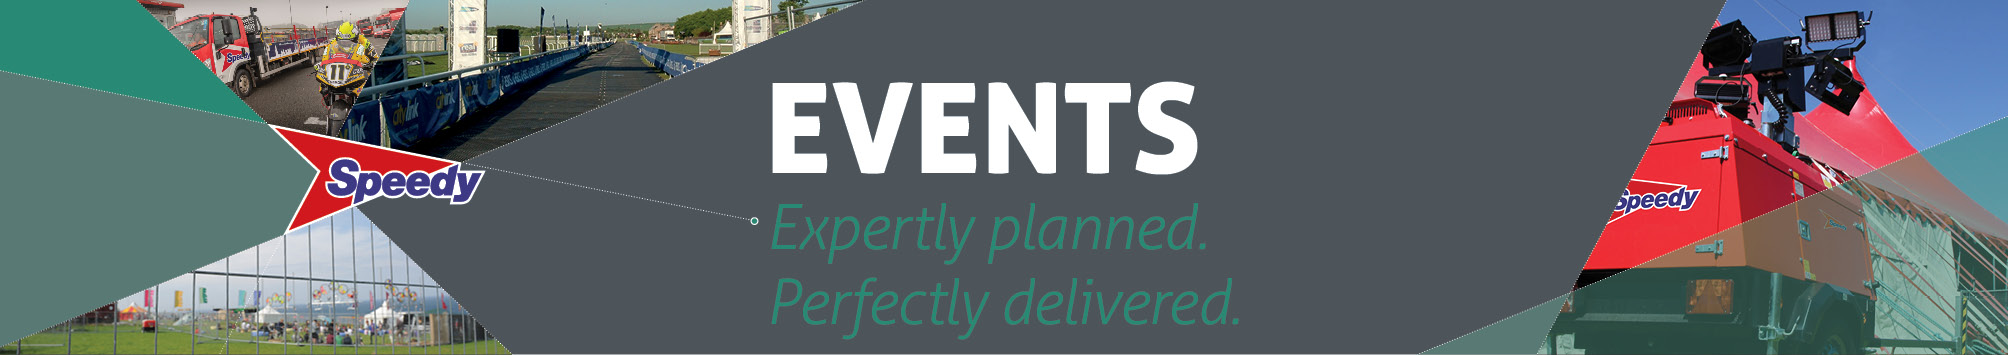 Events Landing Page Header V2.jpg